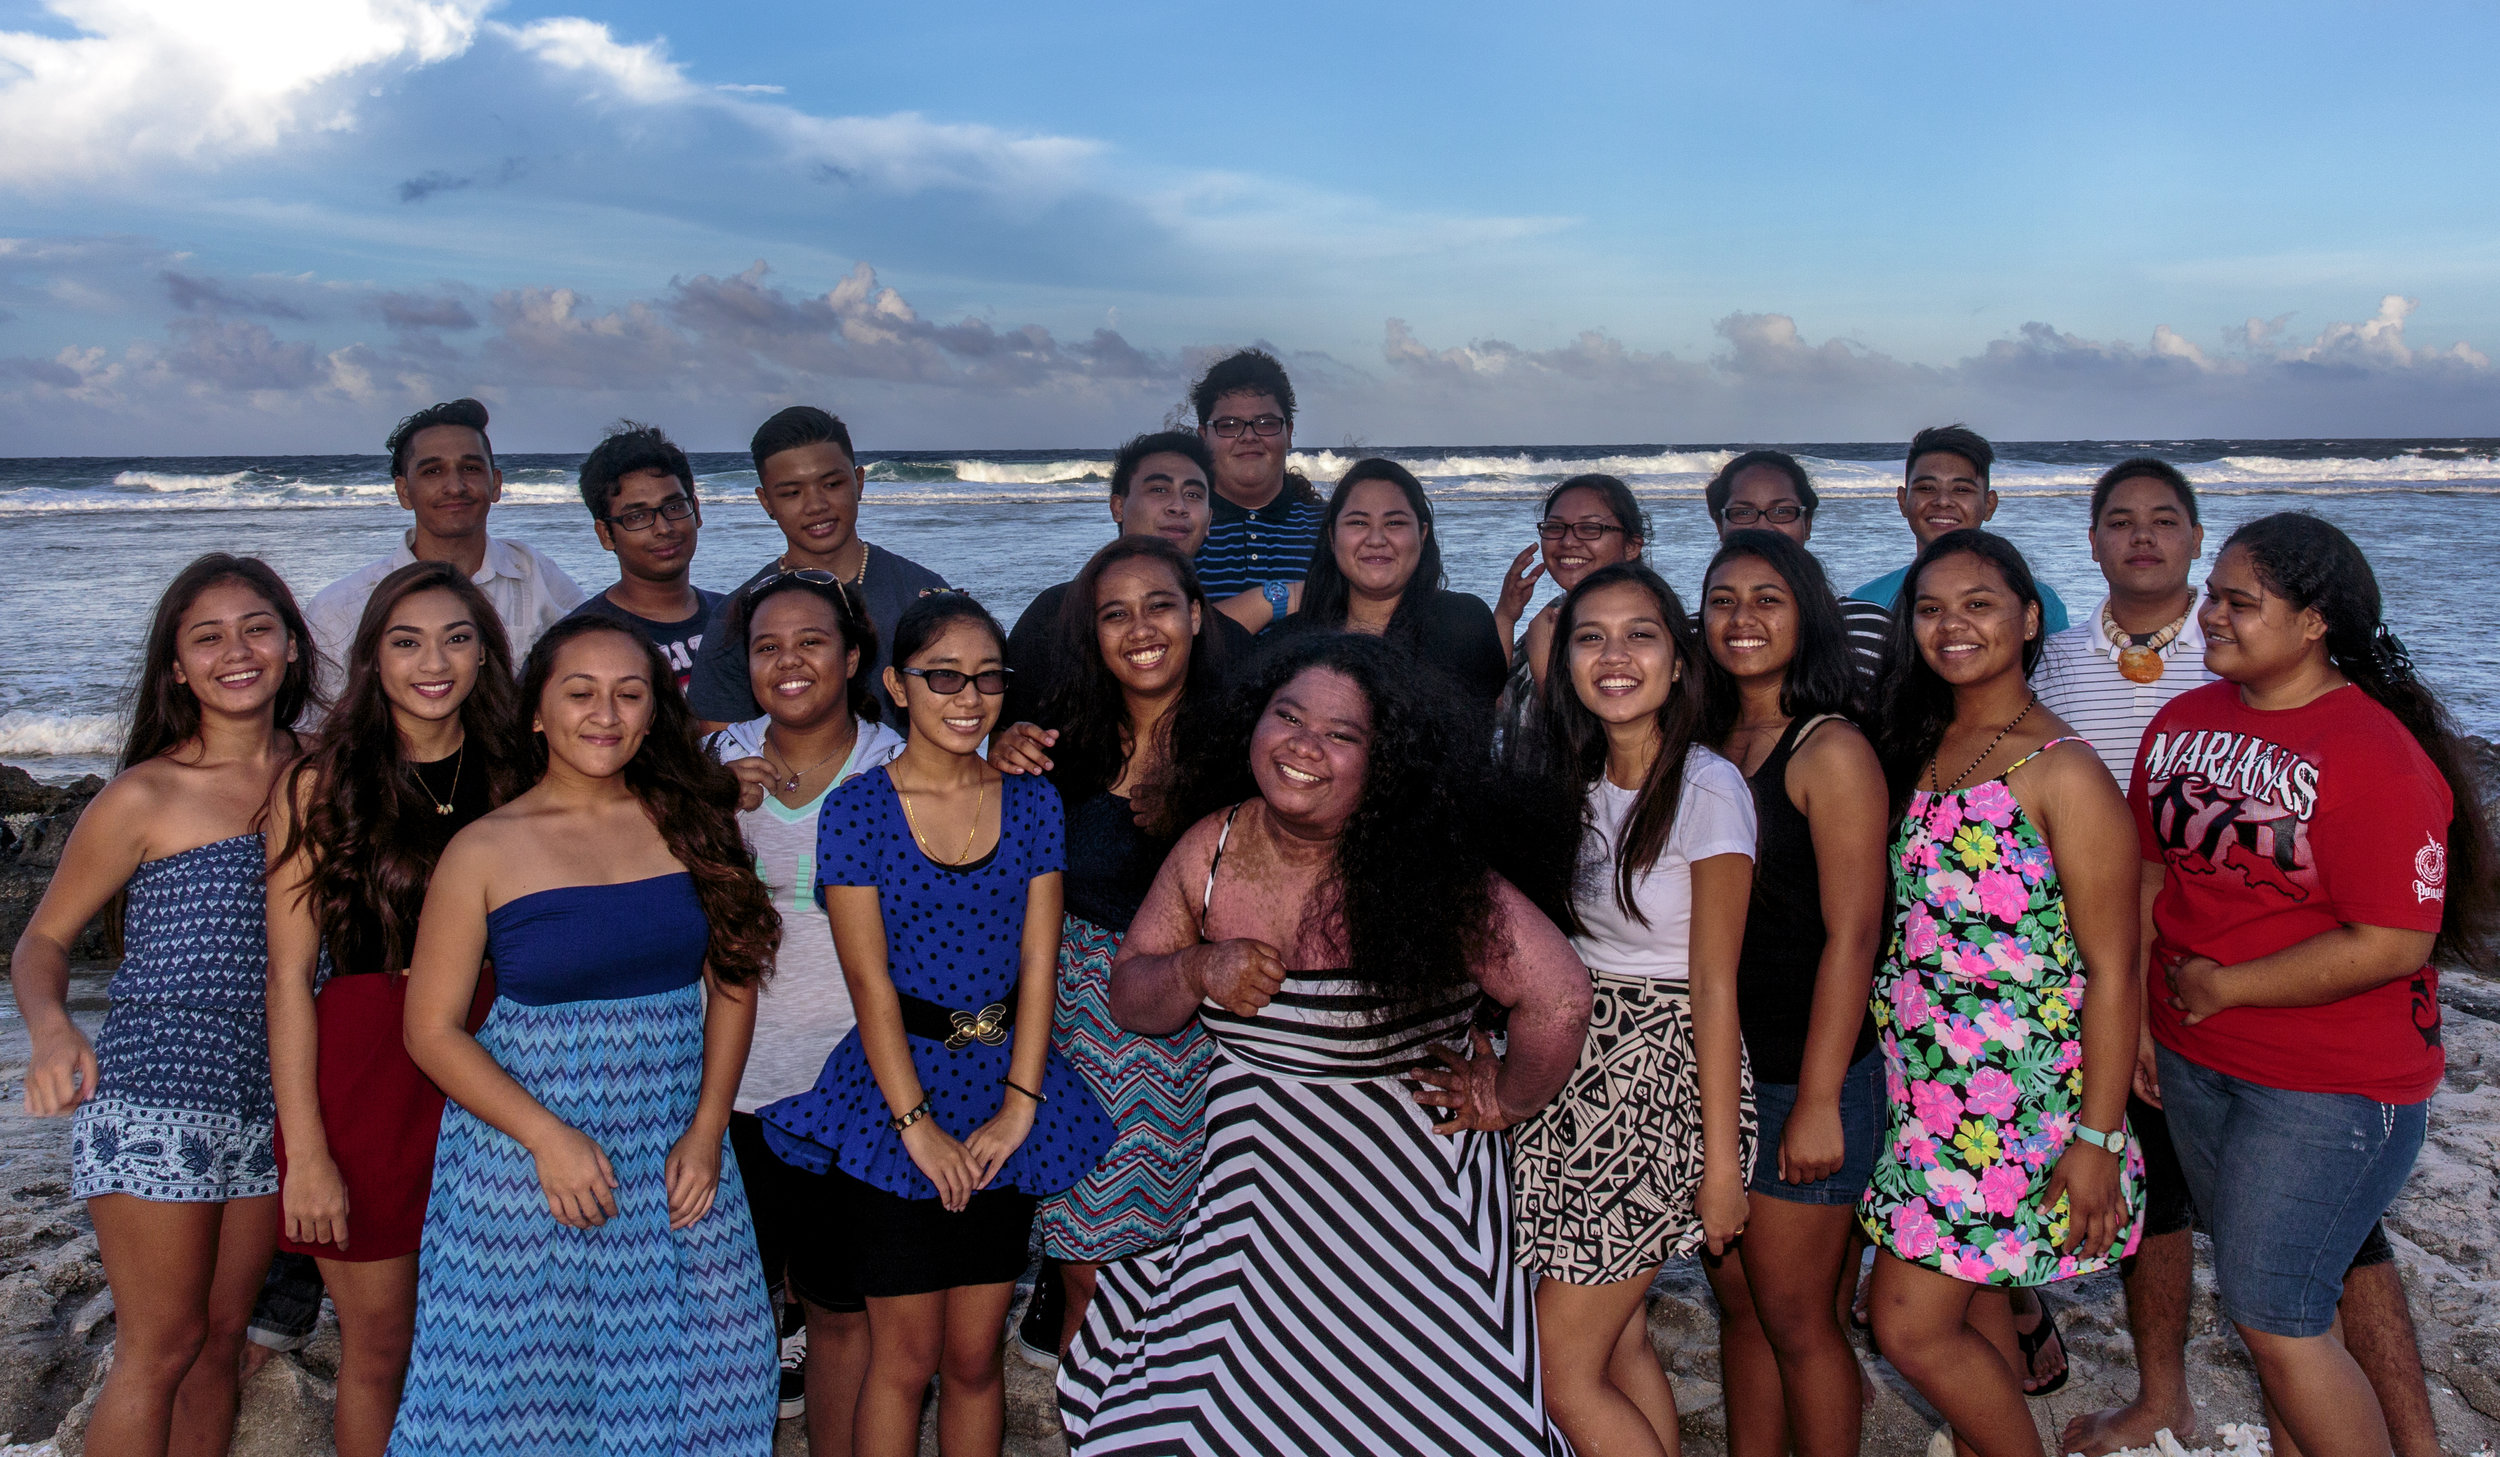 The 2017 Founding Class of Million Dollar Scholars. Kagman High School, Saipan, Northern Mariana Islands